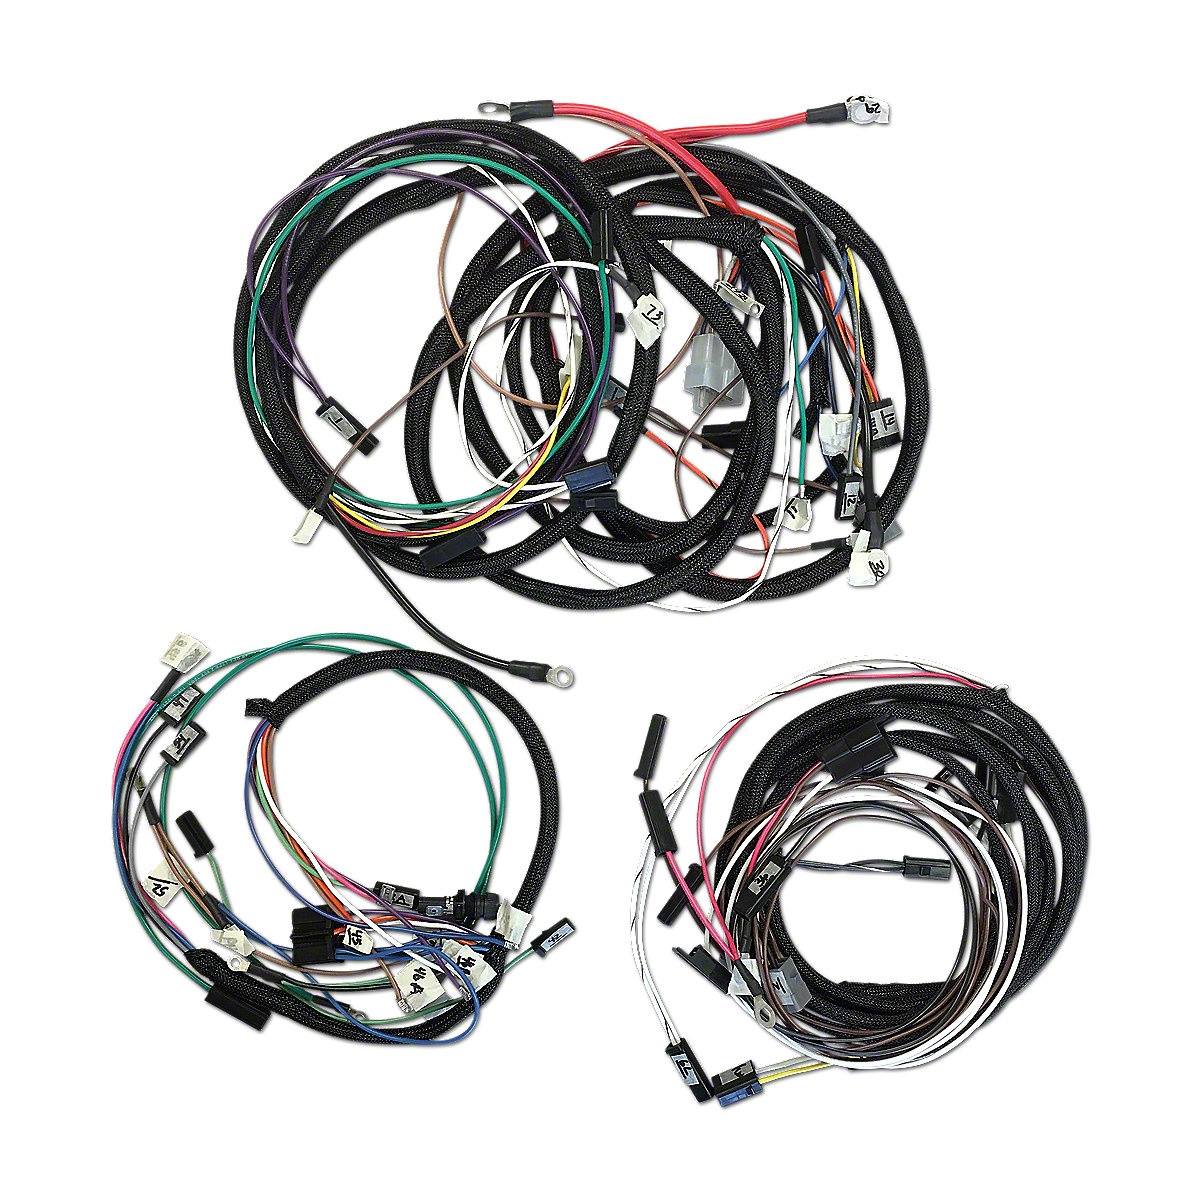 restoration quality wiring harness ihs3555